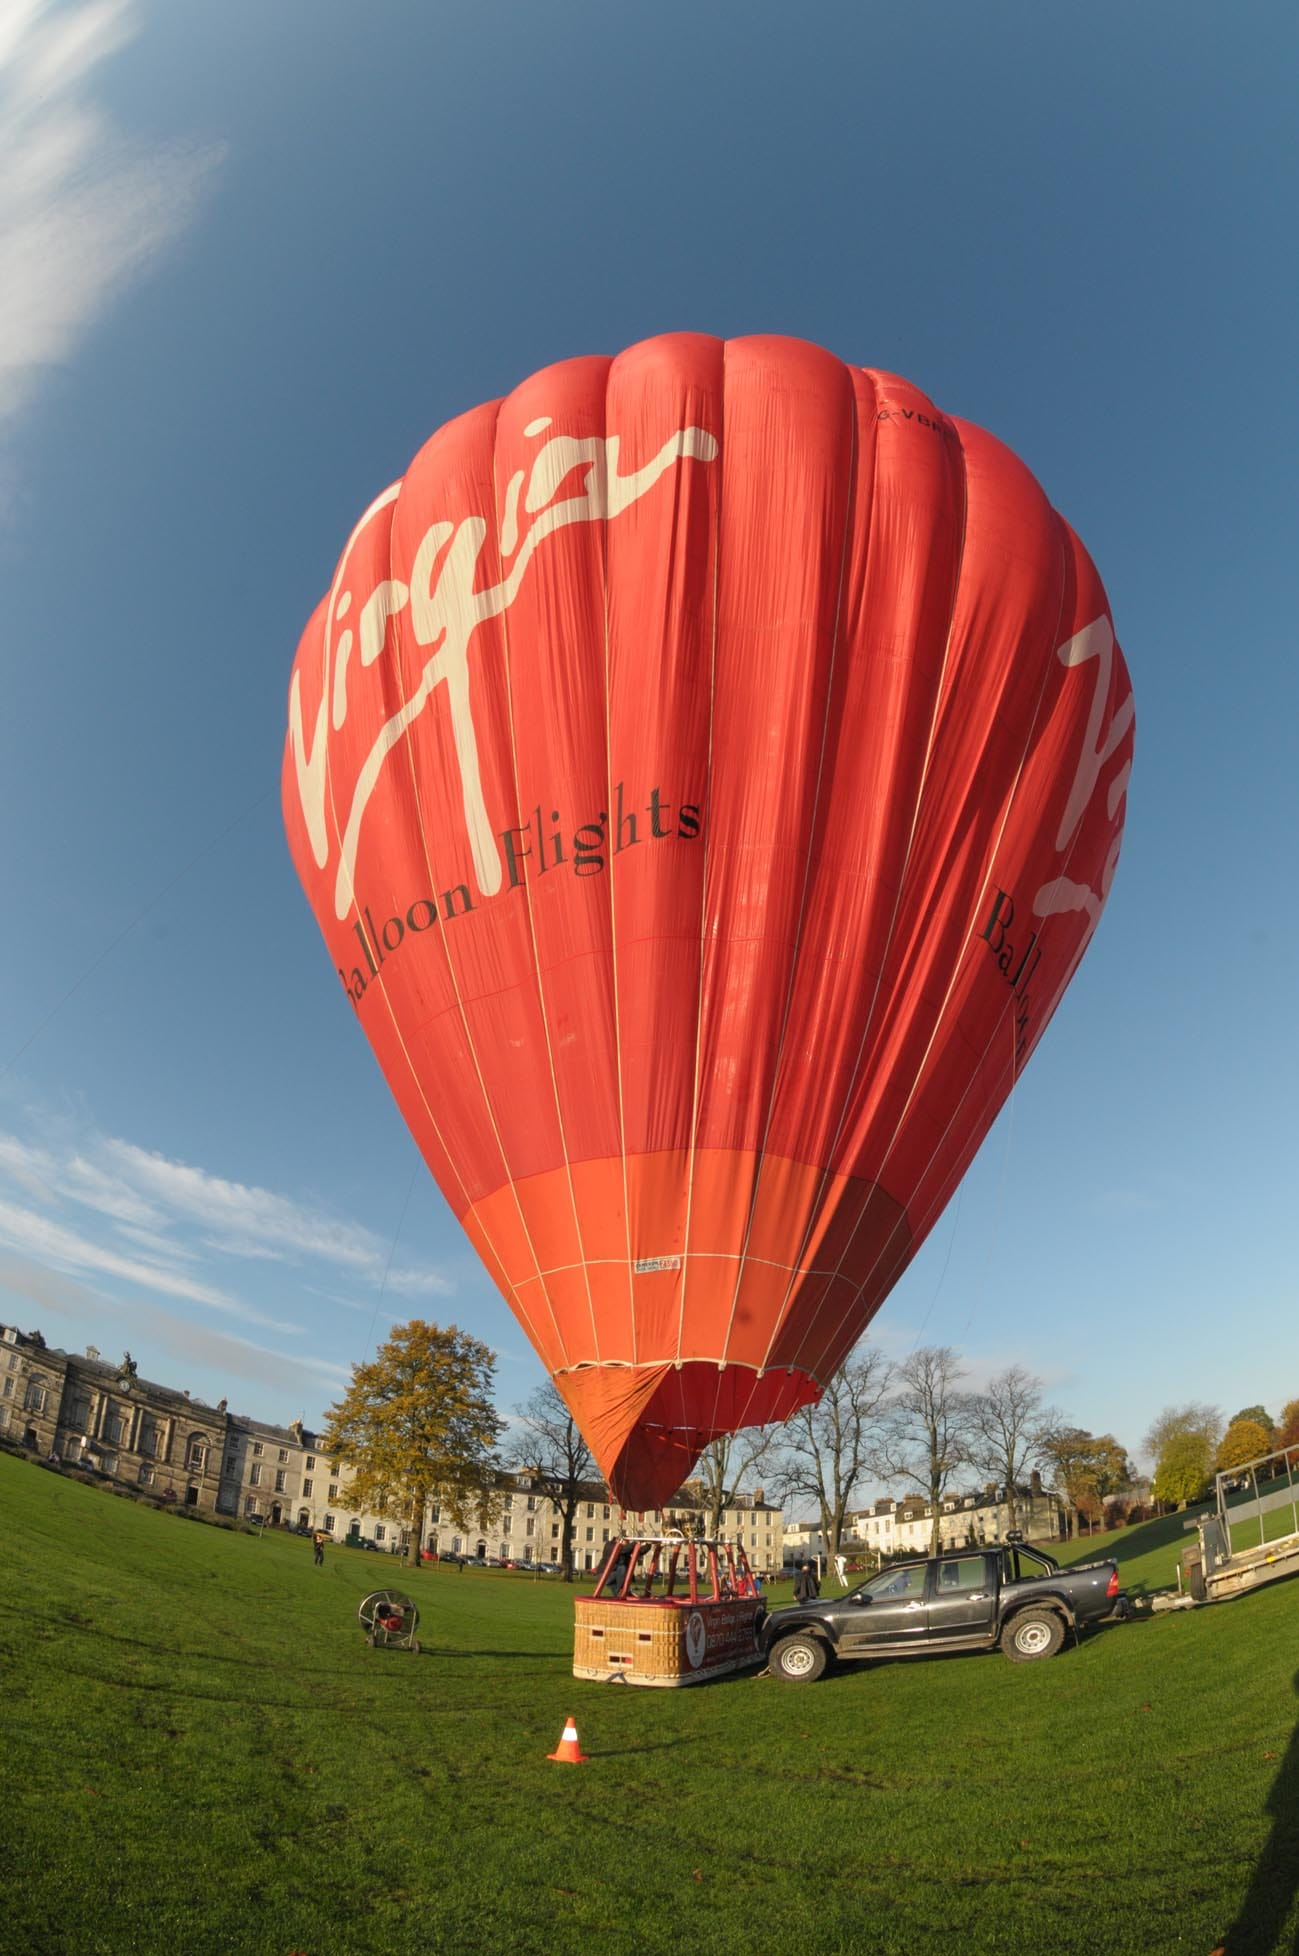 Virgin hot air Balloon ready to launch from Perth